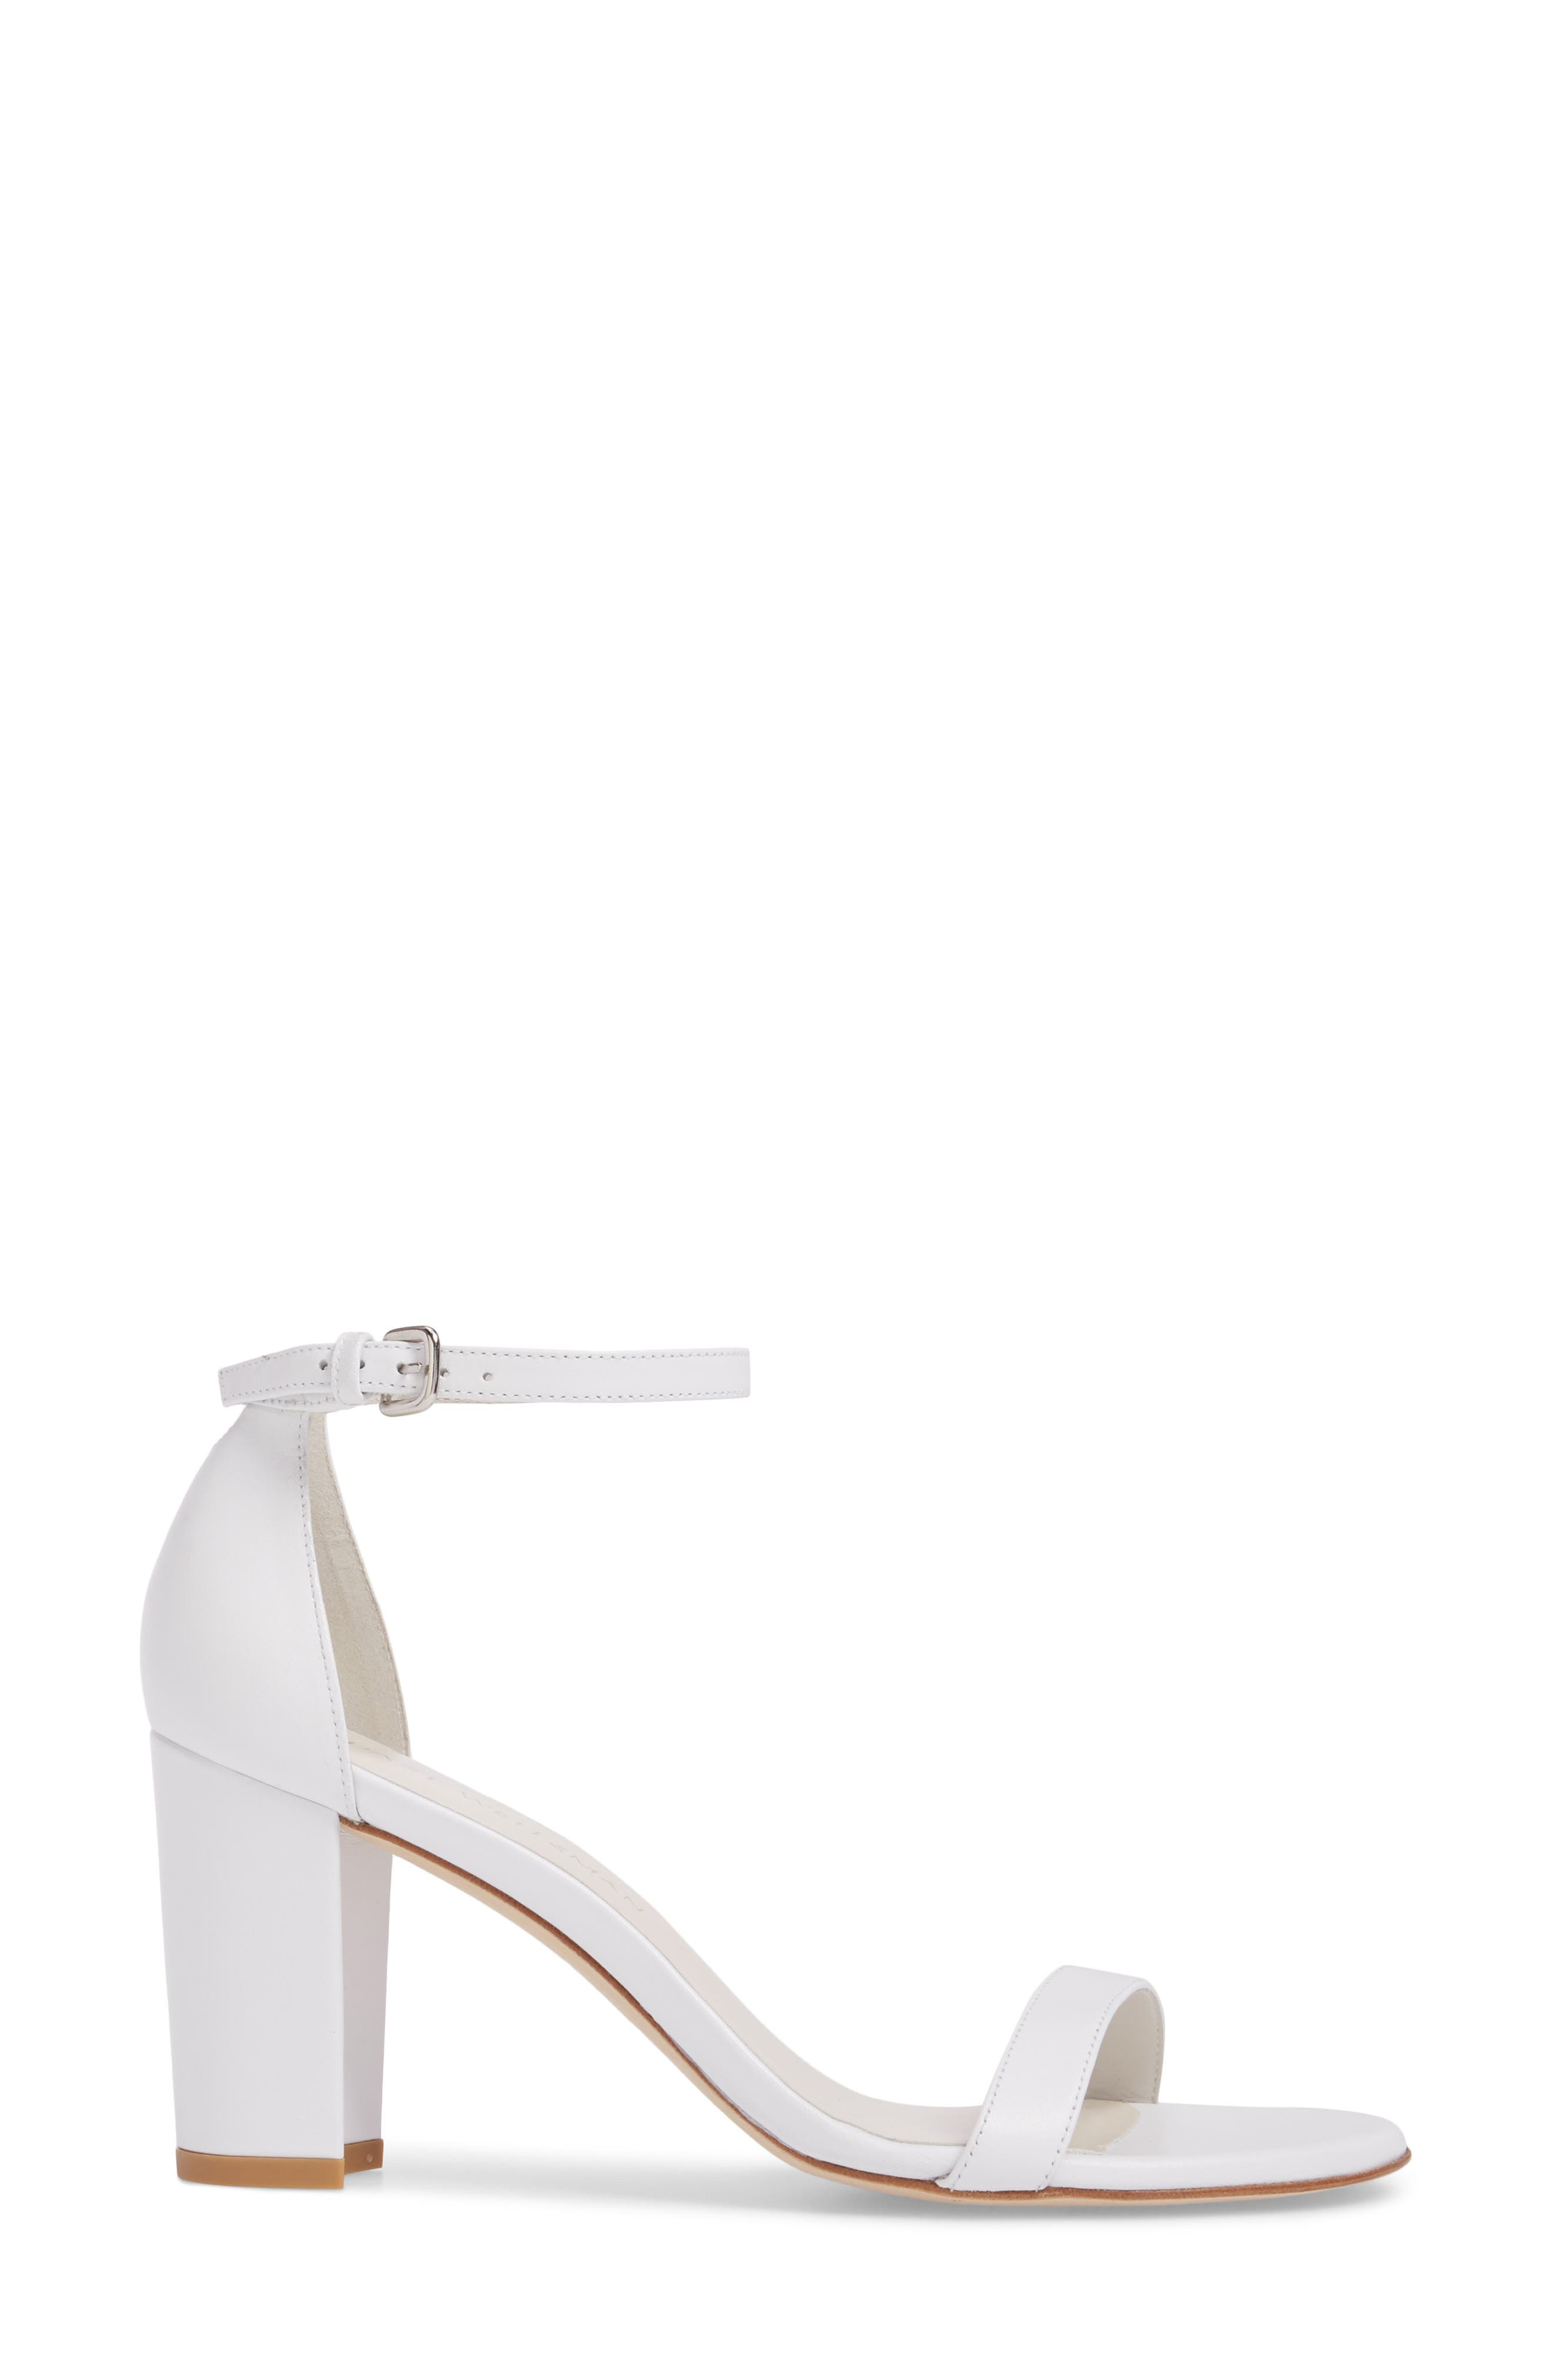 NearlyNude Ankle Strap Sandal,                             Alternate thumbnail 56, color,